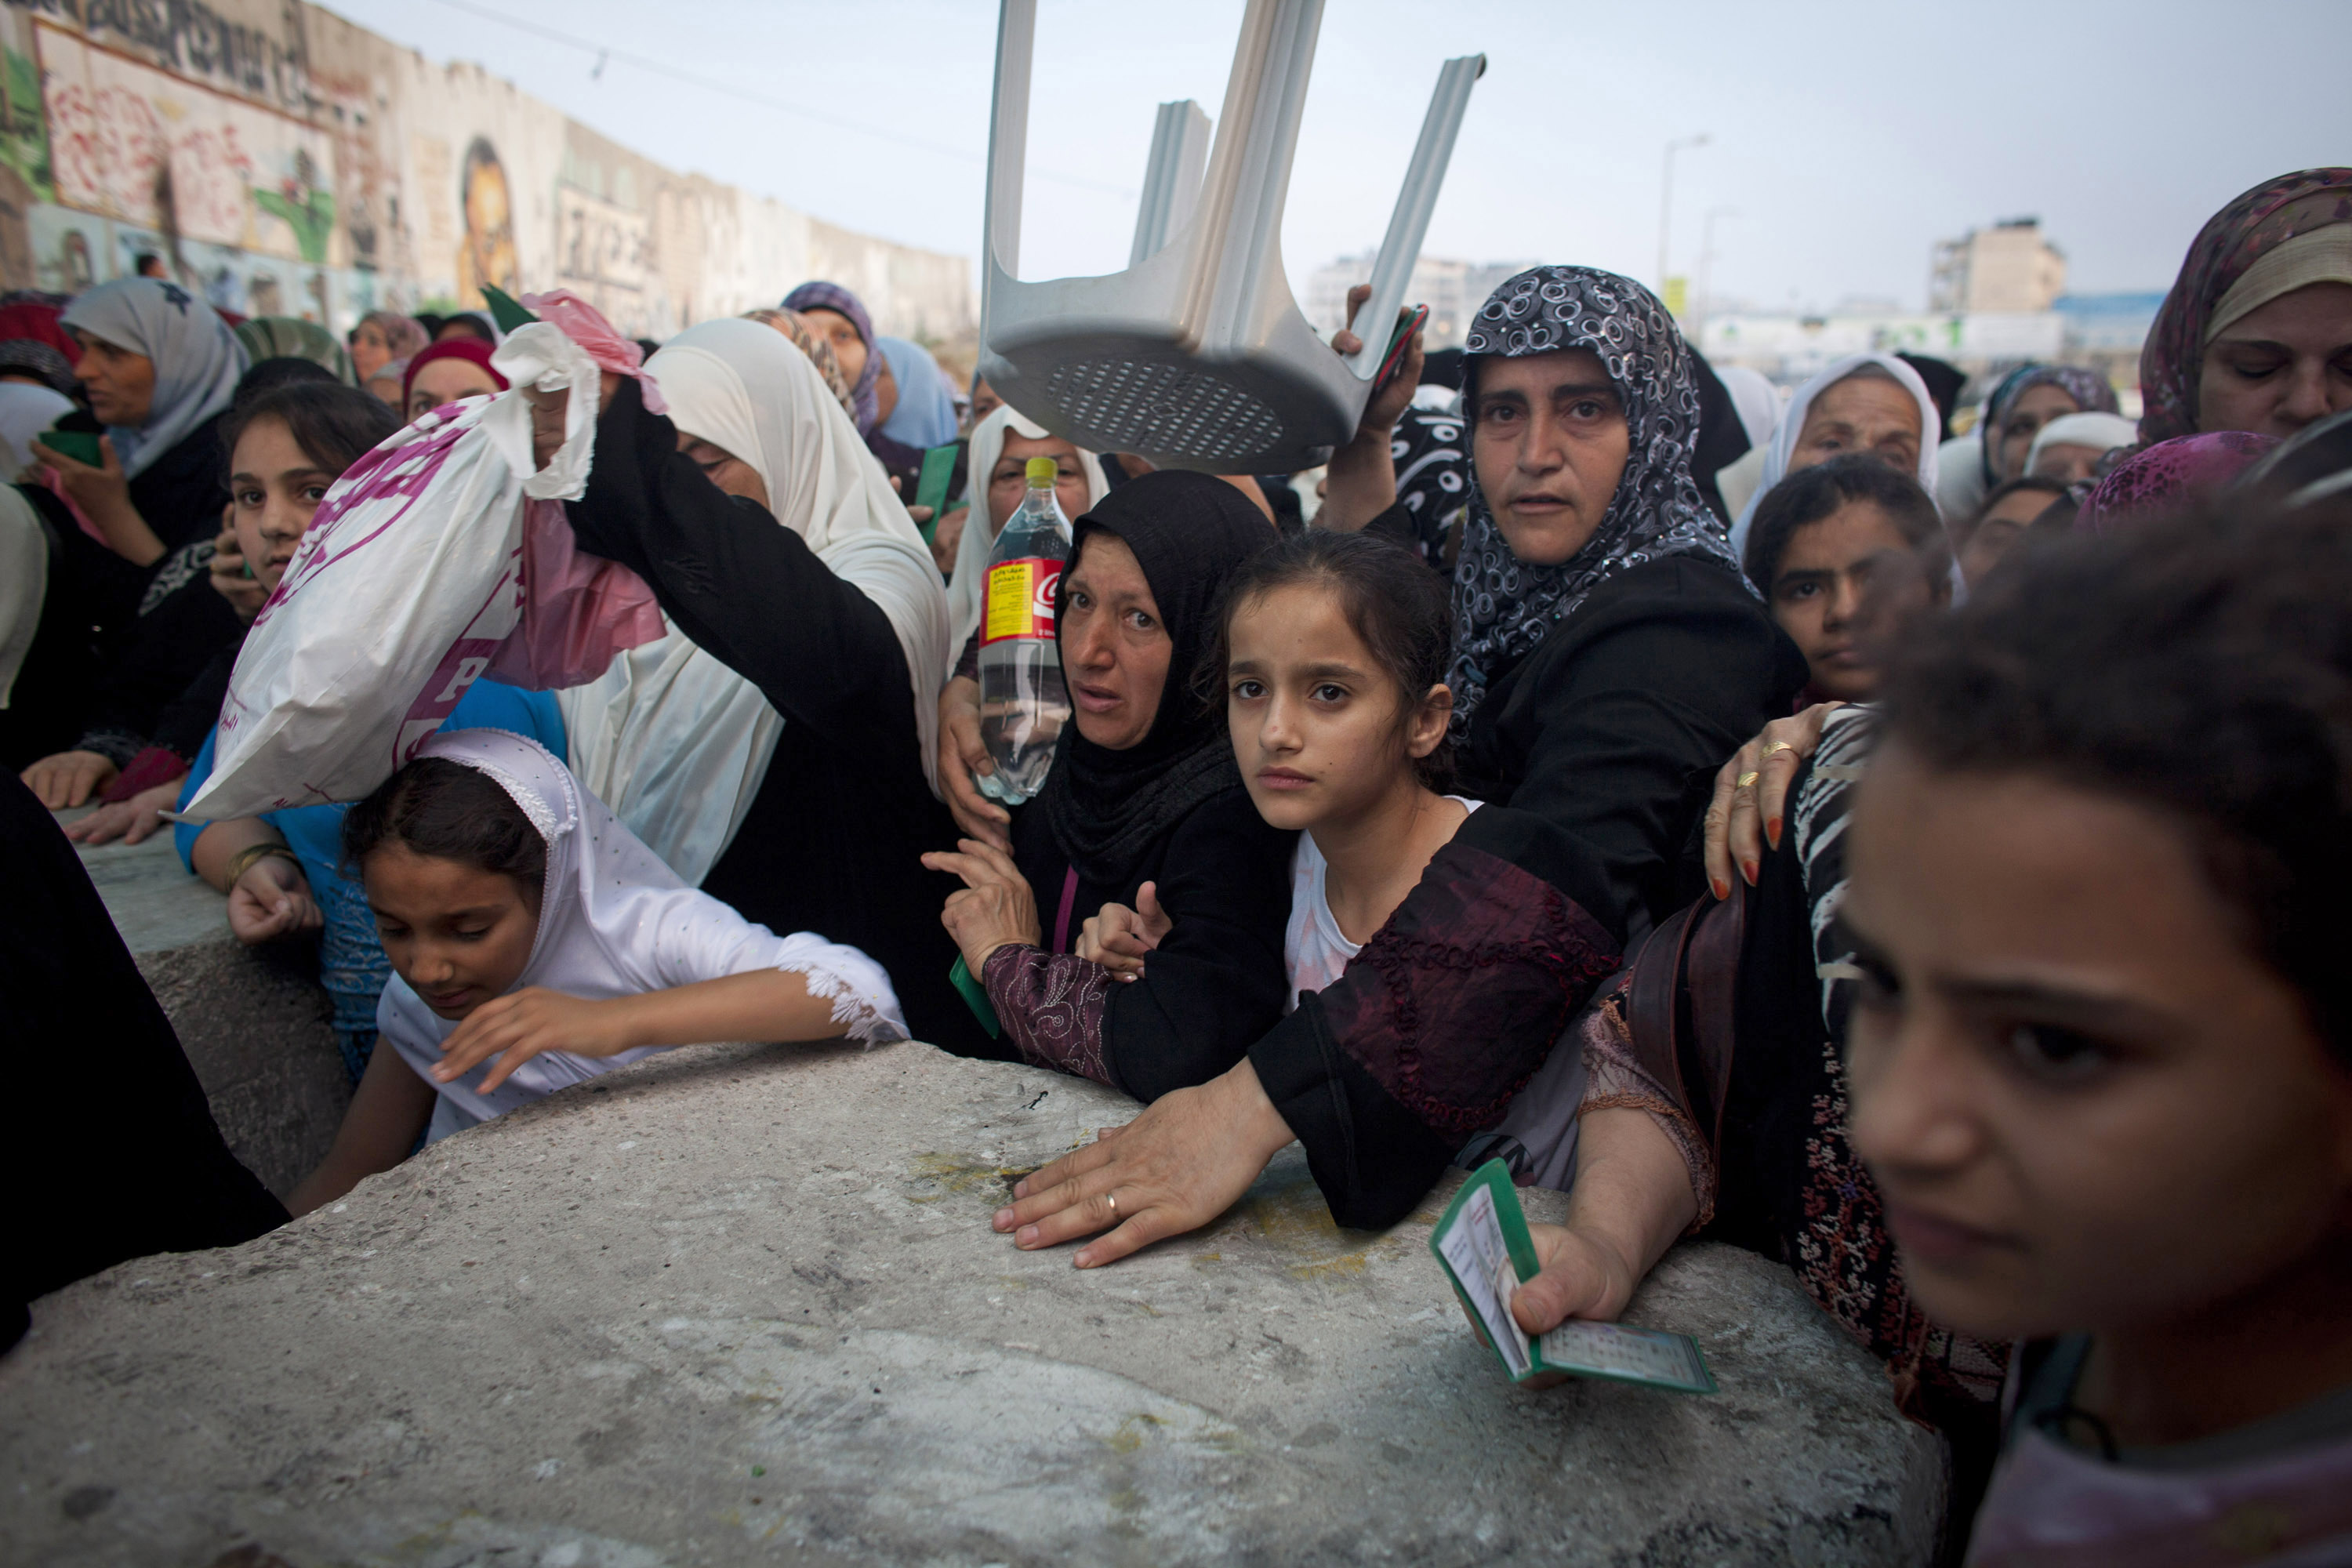 In the very early morning, Palestinian worshippers waited to cross into Jerusalem through the Qalandiya checkpoint in order to attend Friday prayers during Ramadan at the Al Aqsa Mosque, West Bank, July 27, 2012. During this time of increased traffic, women were separated from men and were forced to cross by the thousands through narrow cracks between cement blocks under the watchful eyes of Israeli soldiers and border police. (Photo by Oren Ziv/GroundTruth)